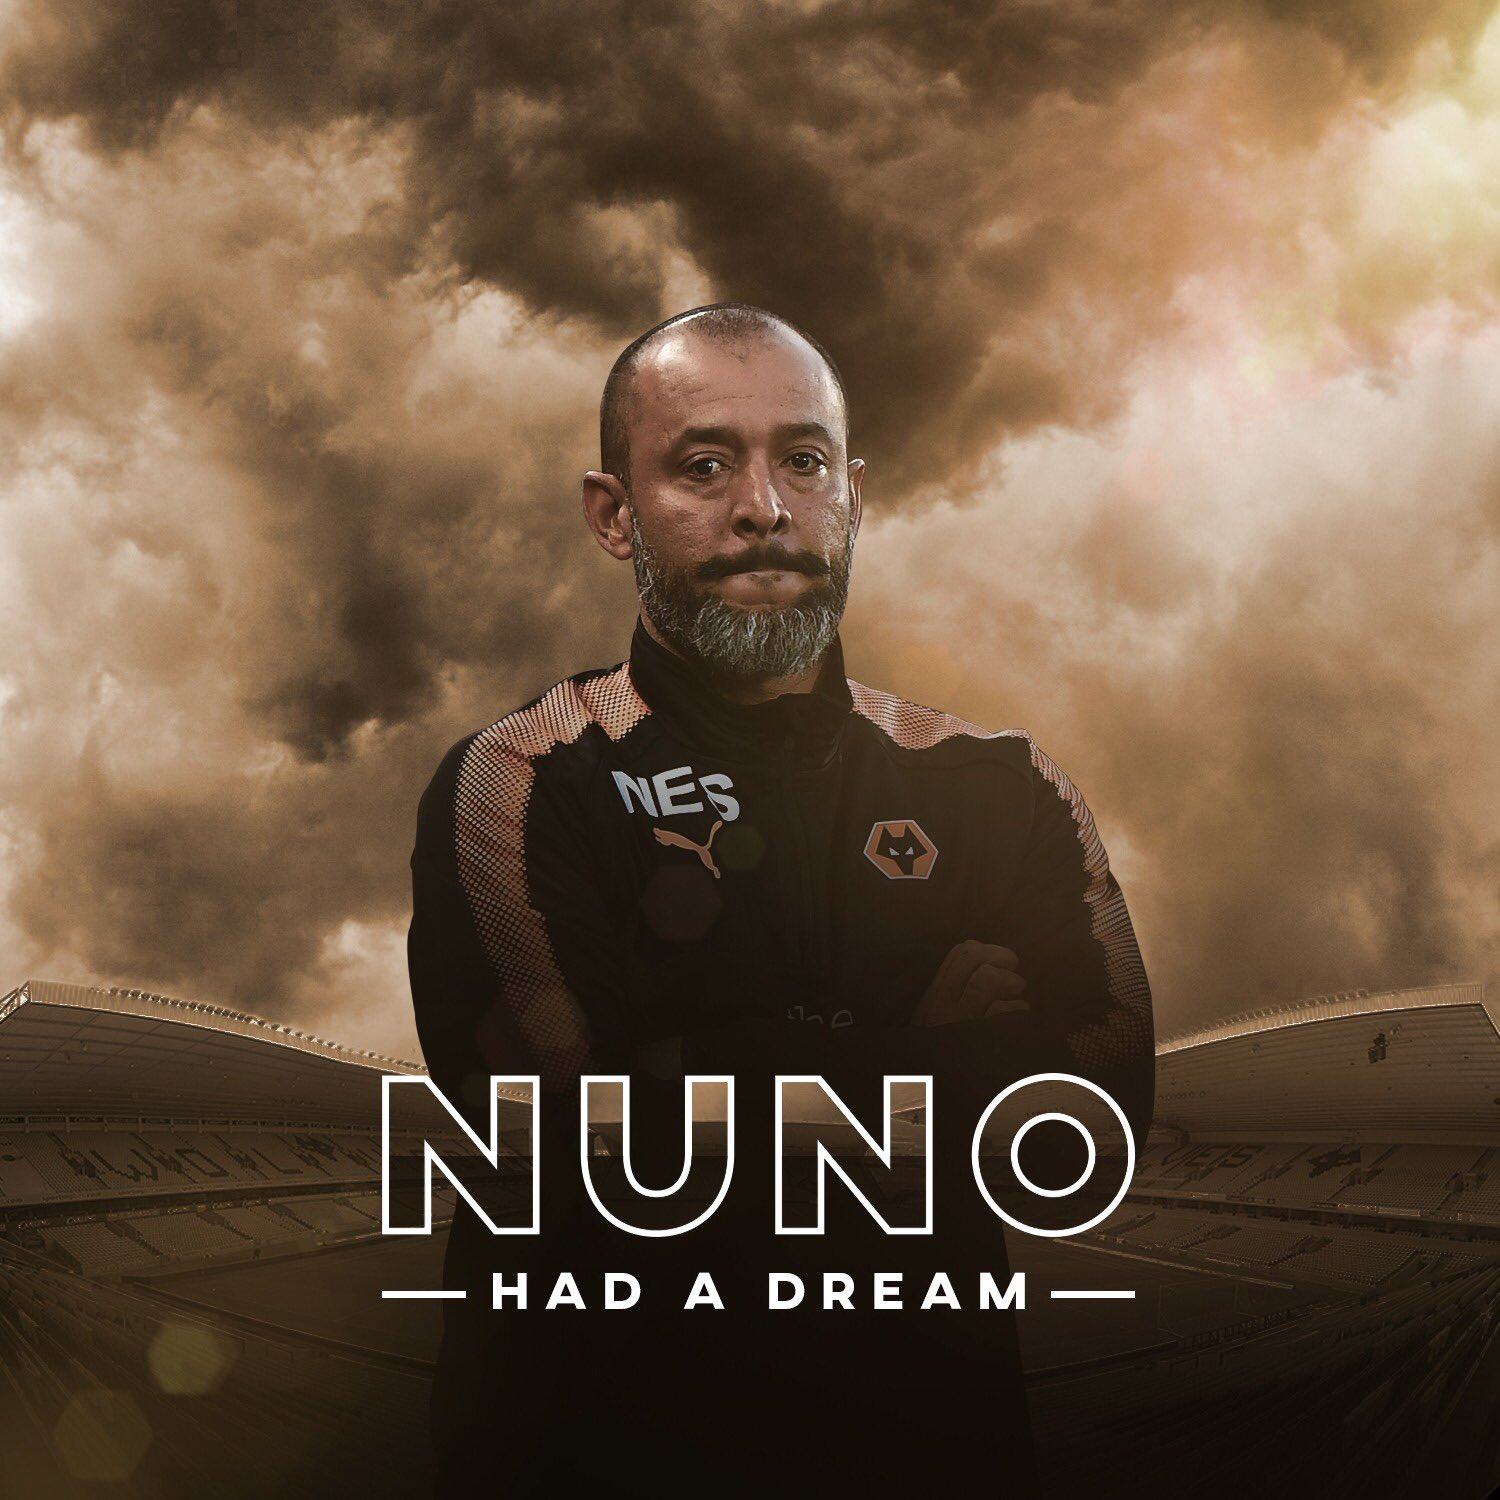 Today is the day all Wolves fans rejoice and celebrate the birth of our God. Happy birthday to you @Nuno 🎂🎉⚽️🐺🧡🖤 #wwfc https://t.co/xIdSa09ZWp